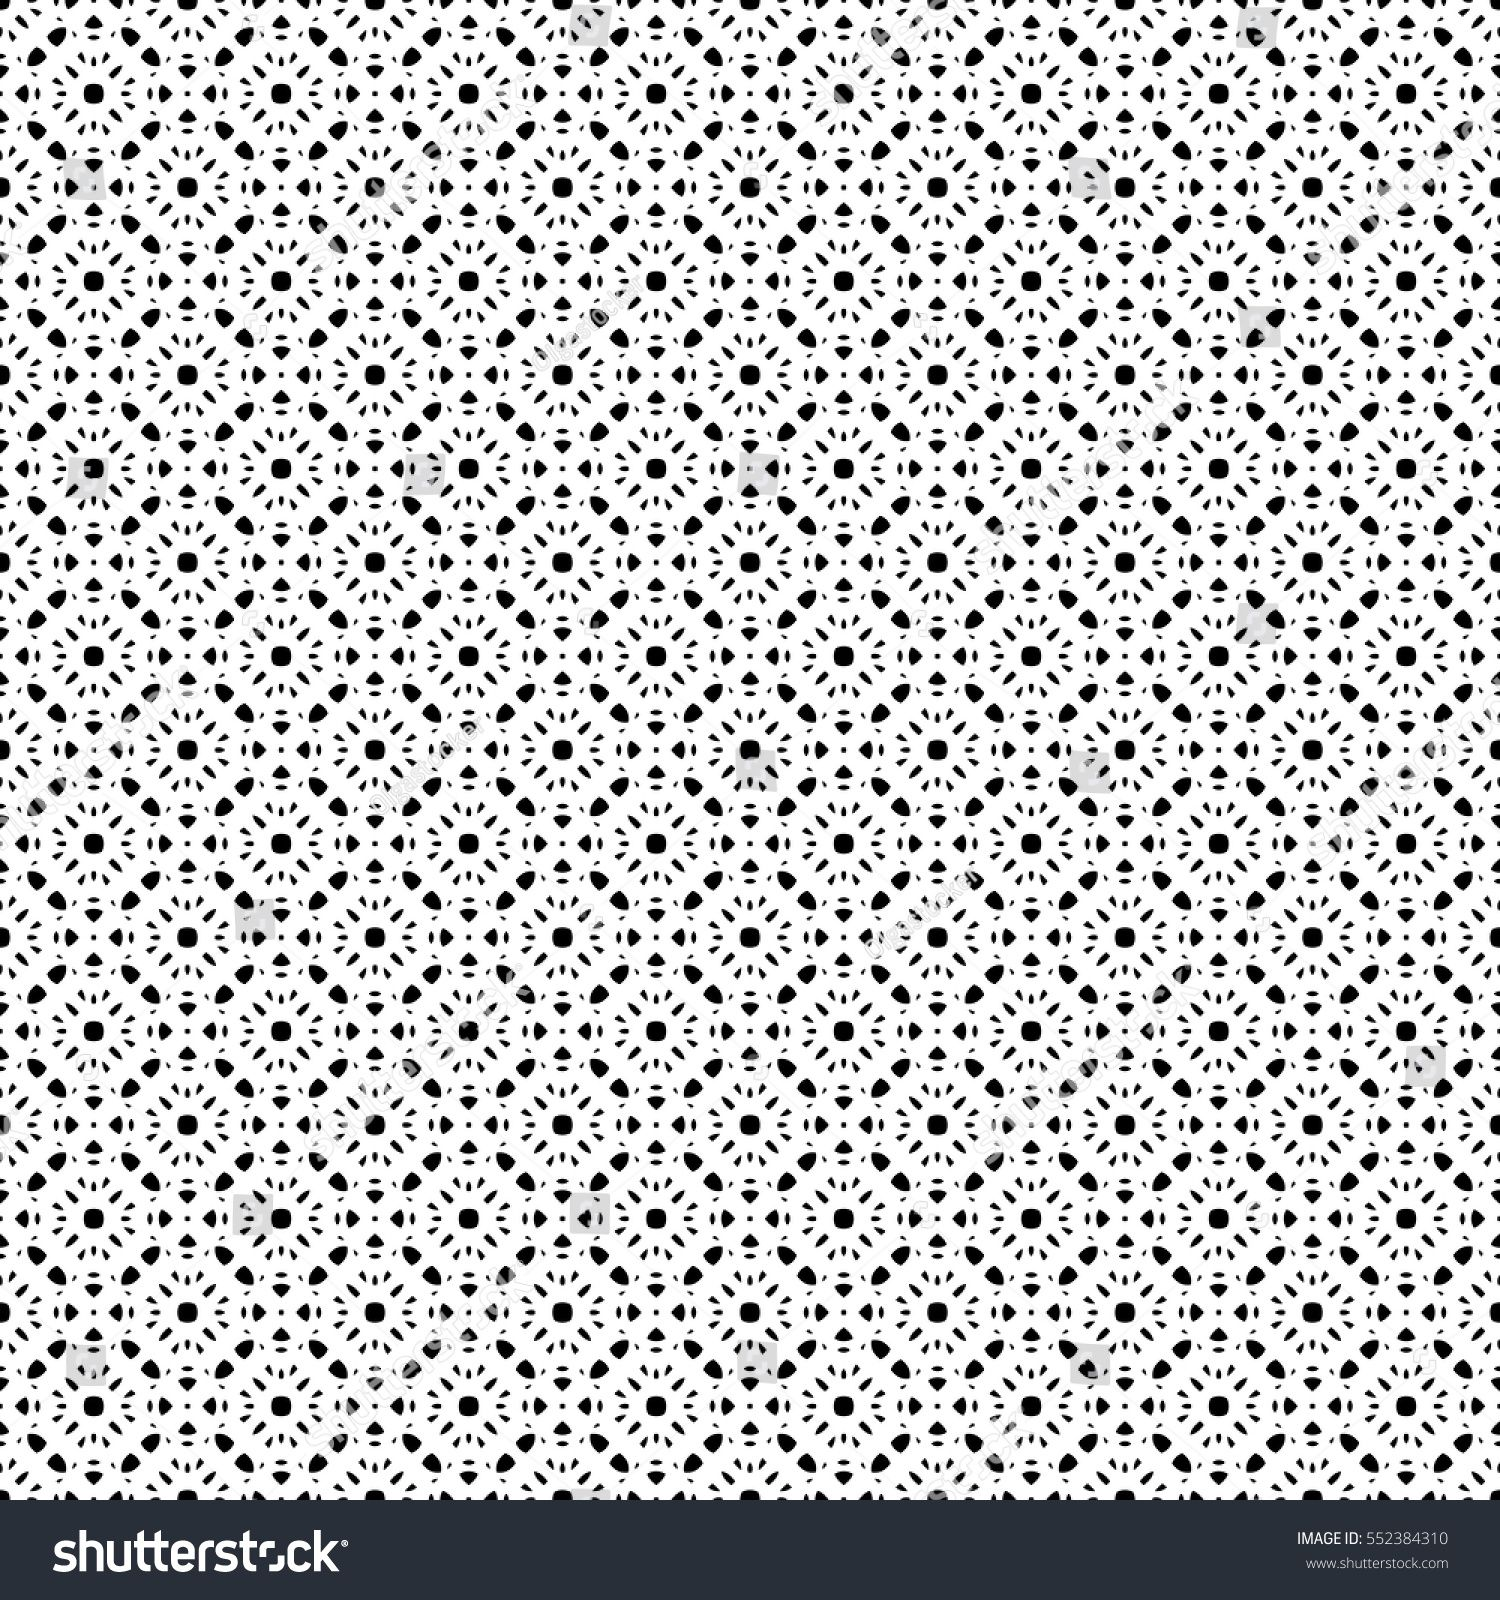 Vector Monochrome Seamless Pattern, Black & White Repeat Ornamental Texture,